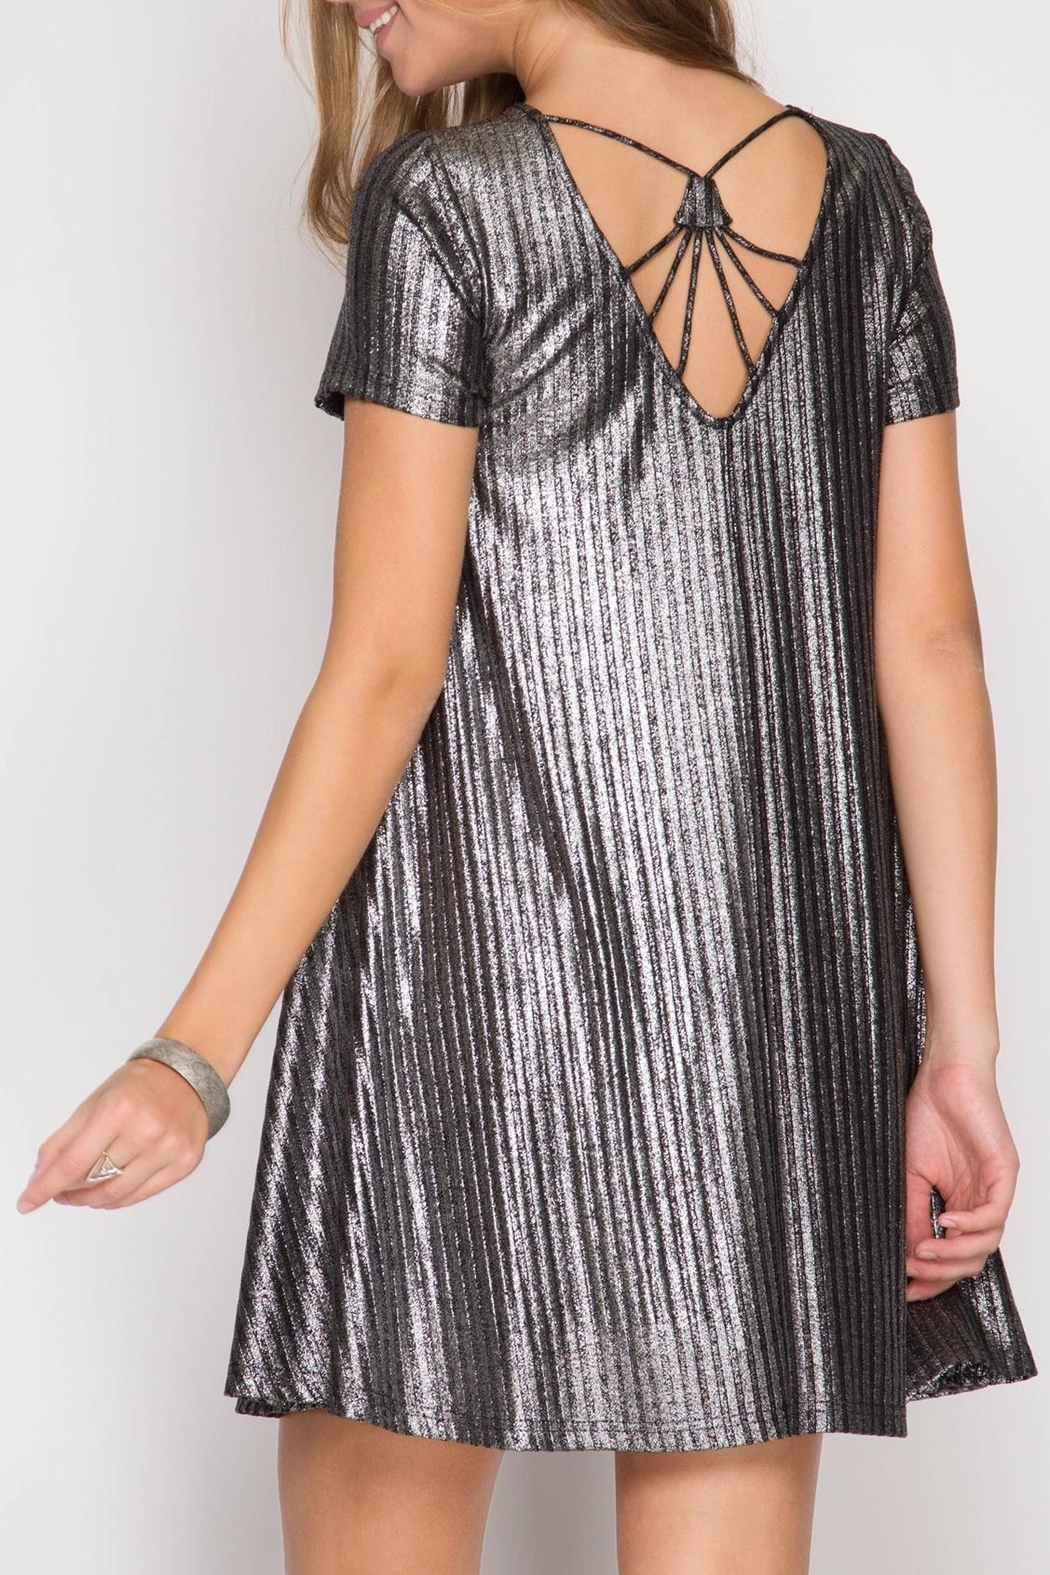 She + Sky Silver Metallic Dress - Main Image